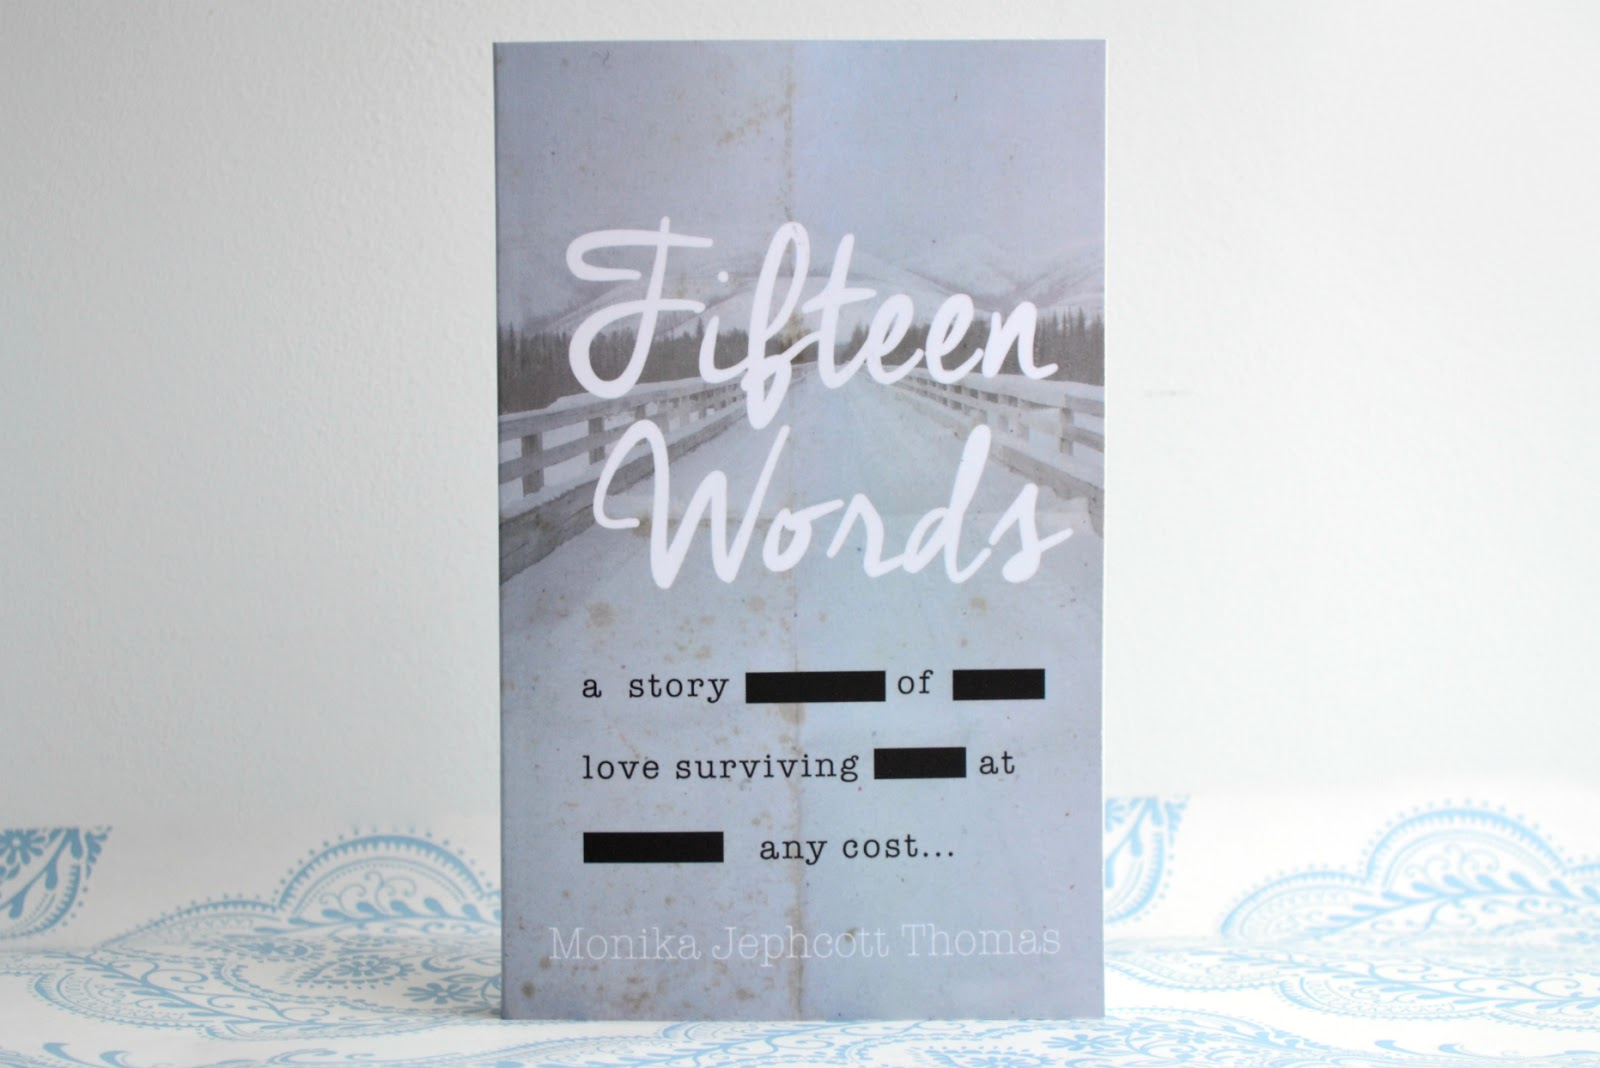 Fifteen Words by Monika Jephcott Thomas